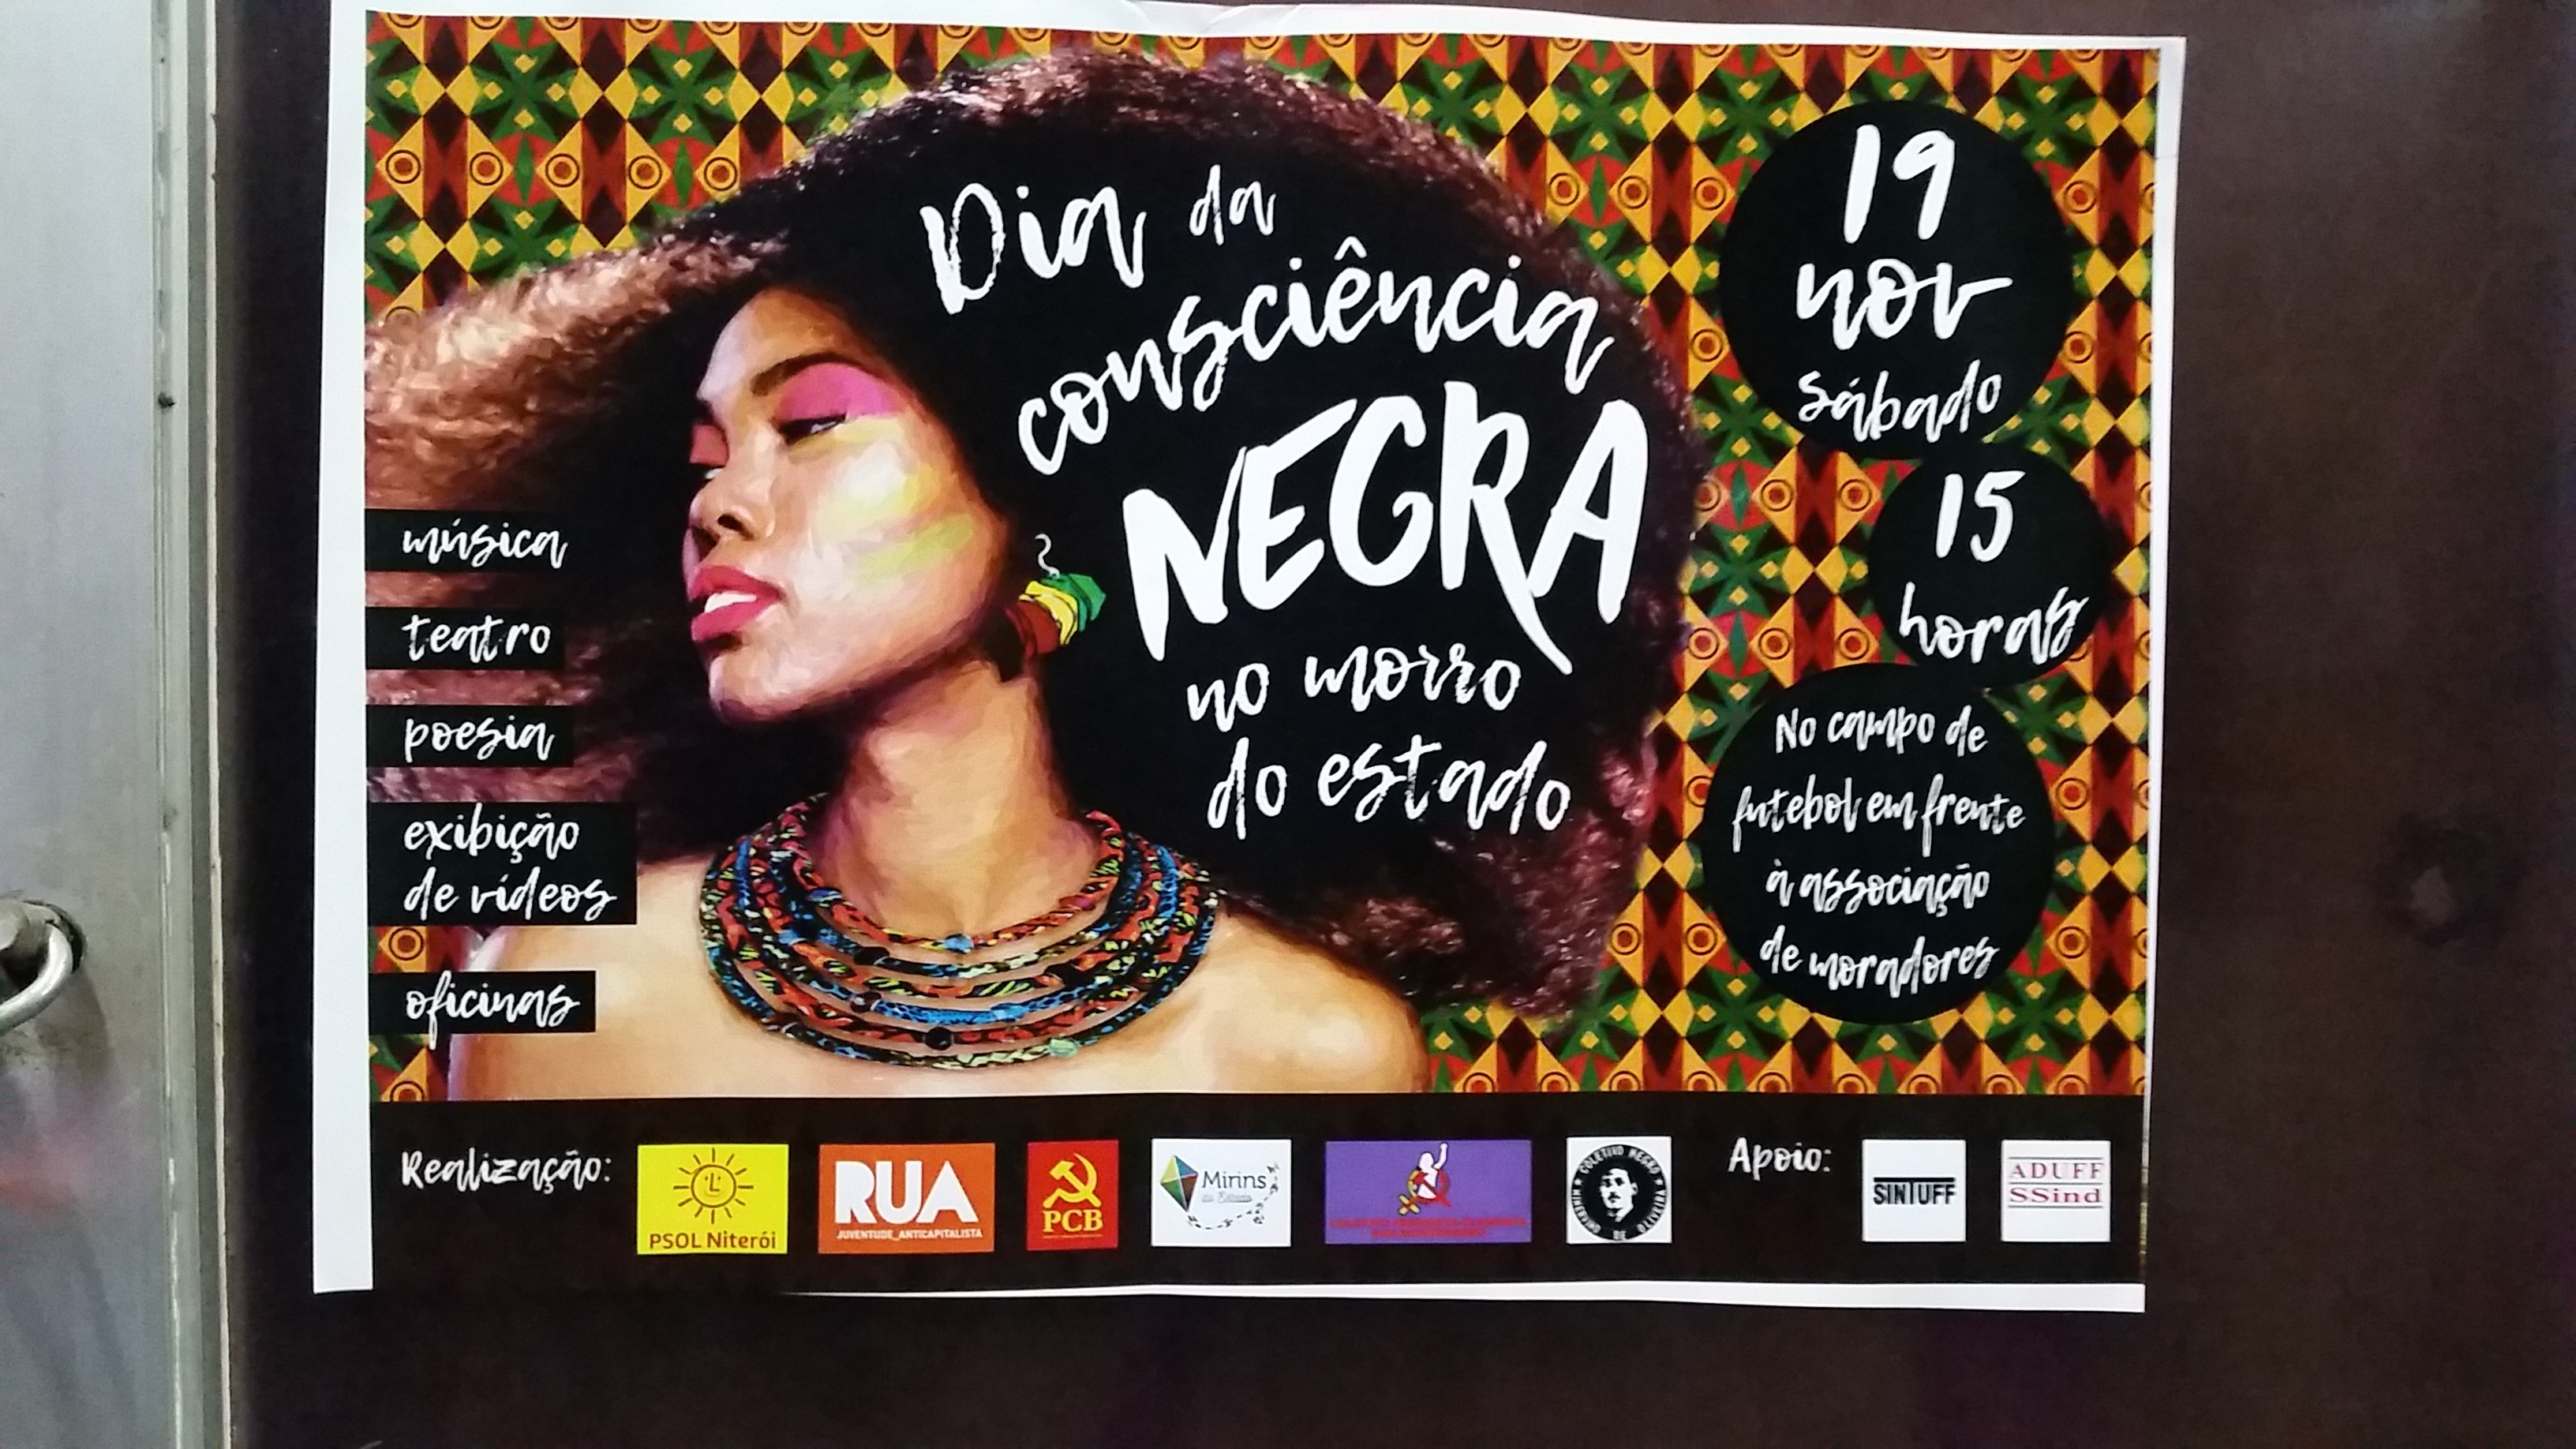 A poster describes a Day of Black Consciousness event with music, theater, poetry, video exhibitions that took place earlier in the year.(Photo by Kristian Davis Bailey)